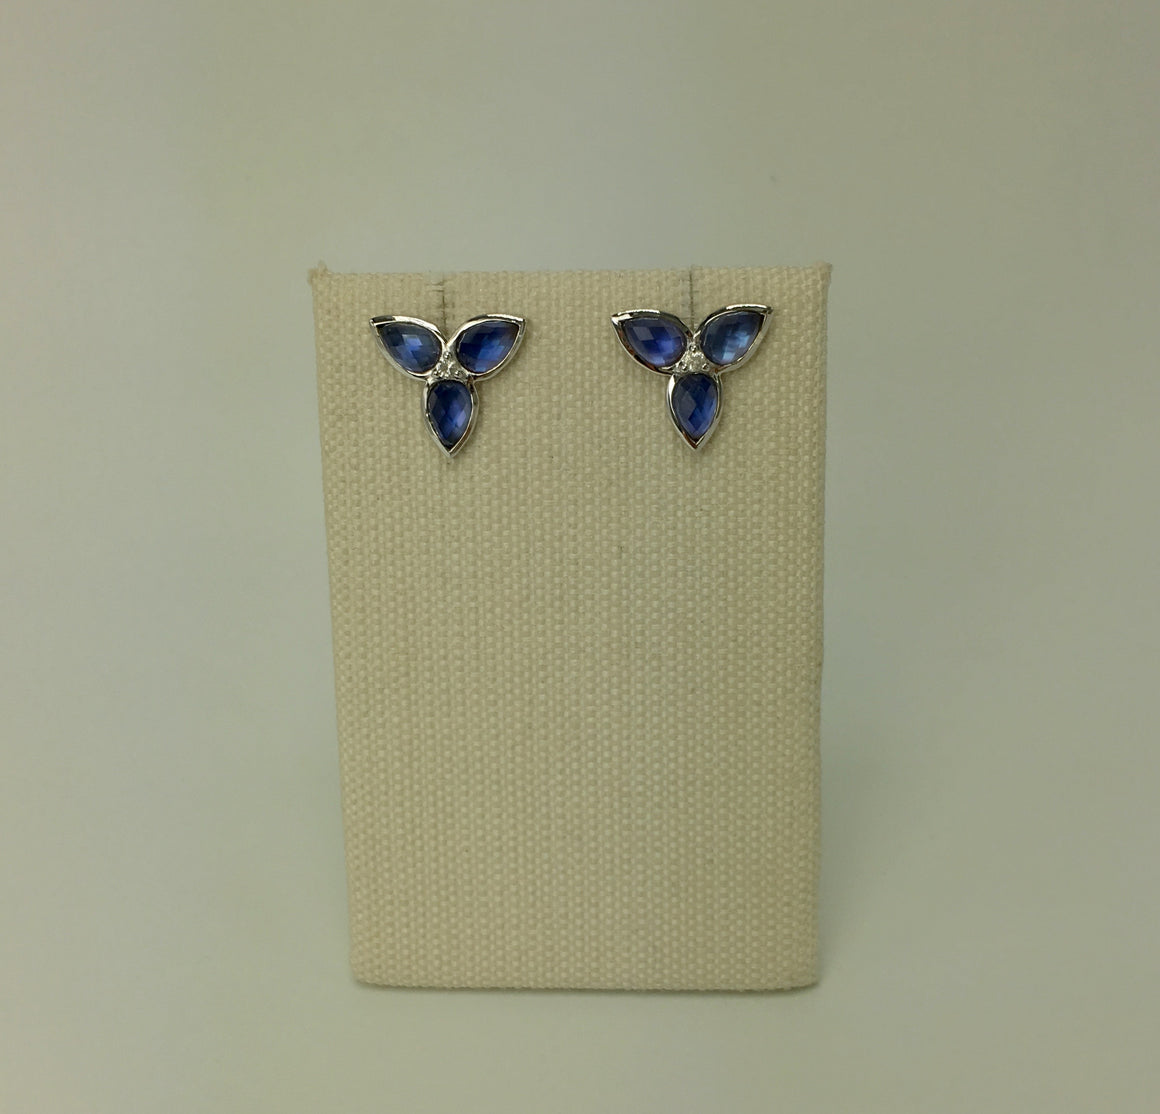 Mariposa Repose Post Earrings in Created London Blue Sapphire - Silver